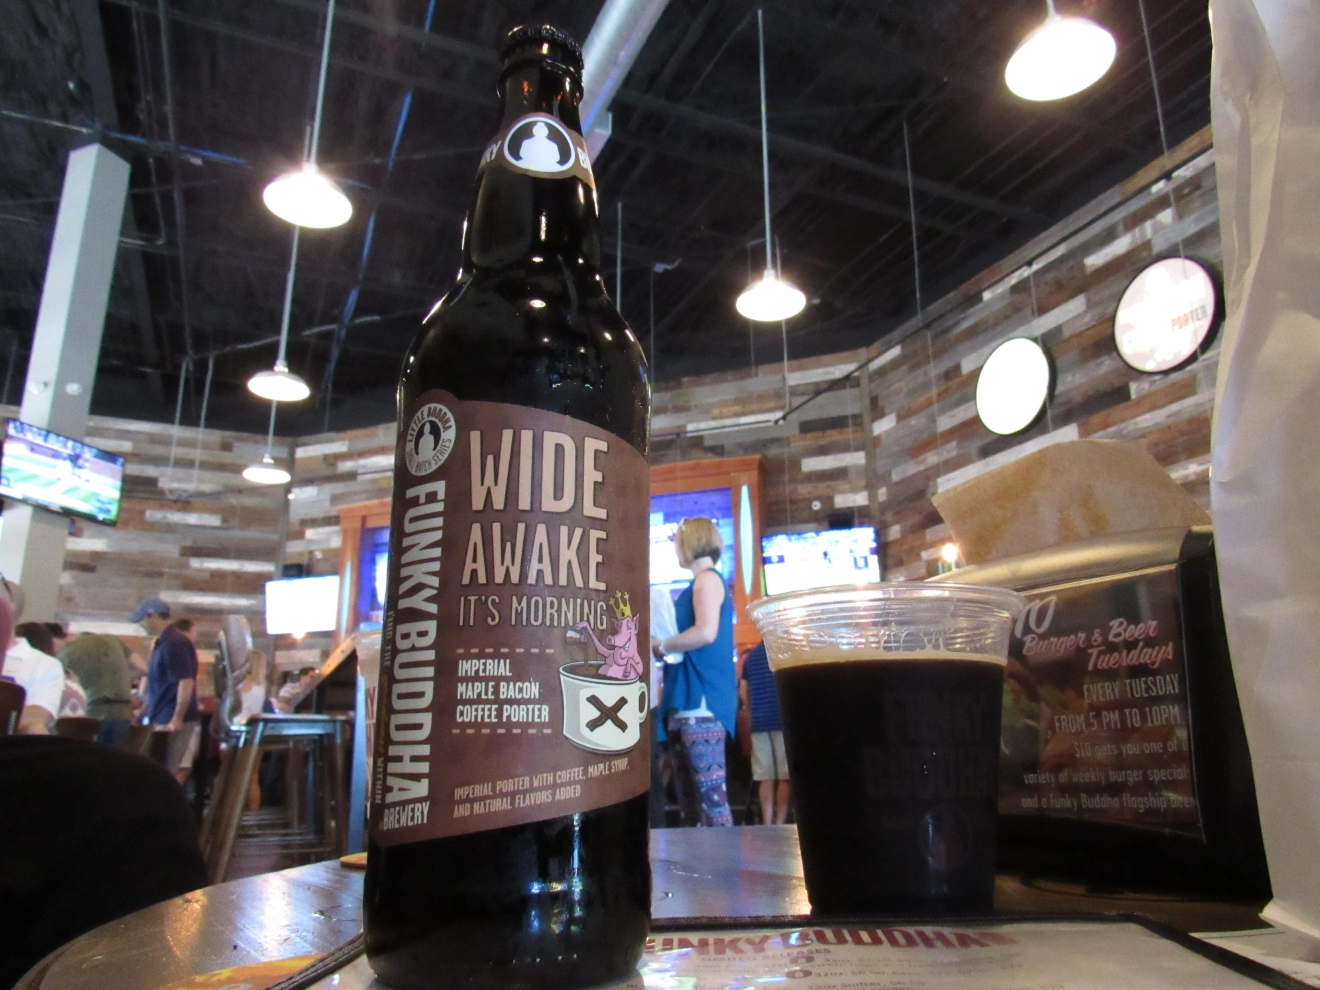 Funky Buddha Brewery special bottle release: Wide Awake, It's Morning 4.24.16 (Photo: Victoria Price/WPEC)